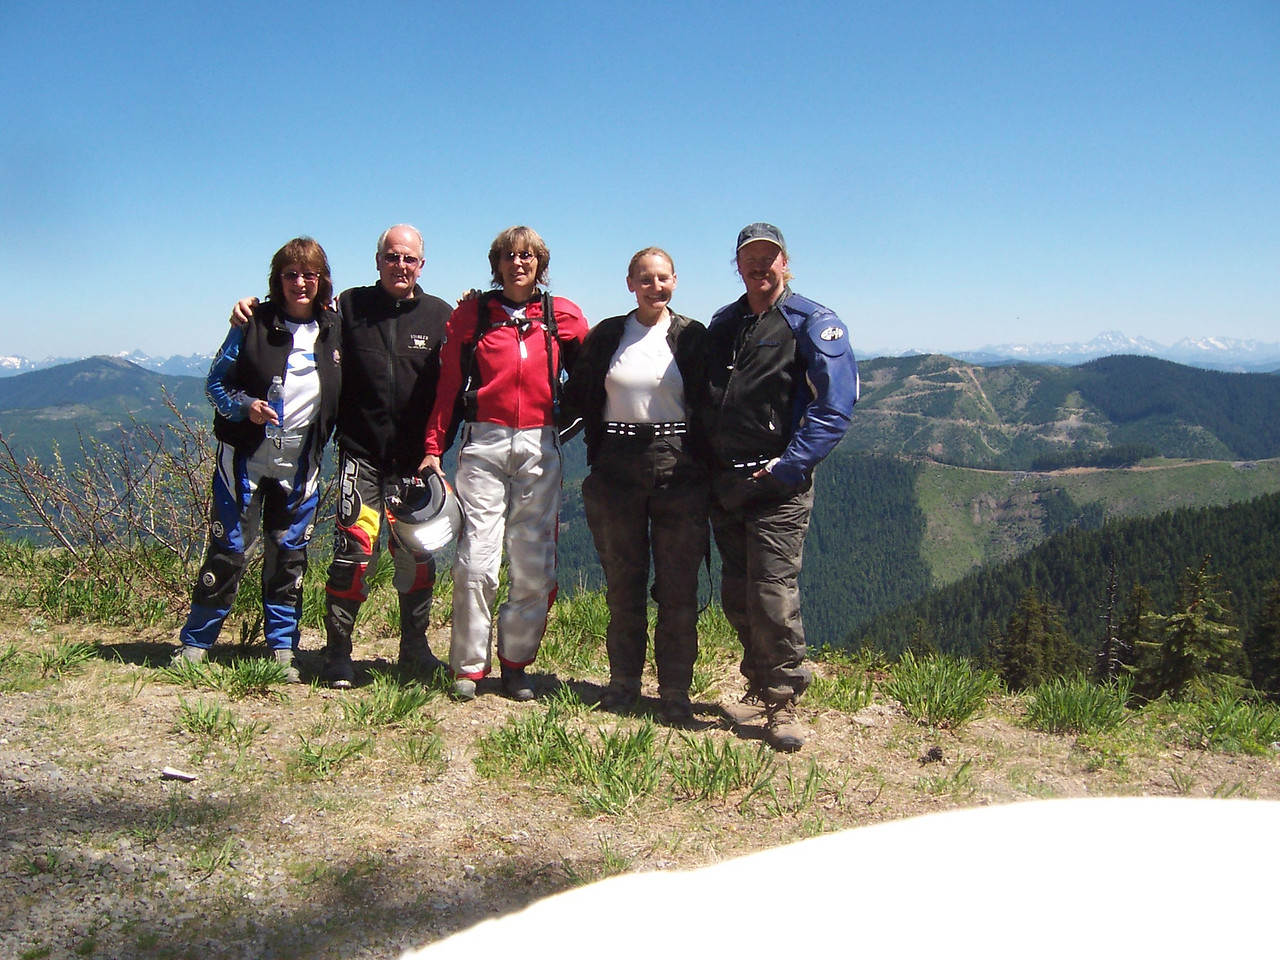 Group shot at the top of FR 7036.